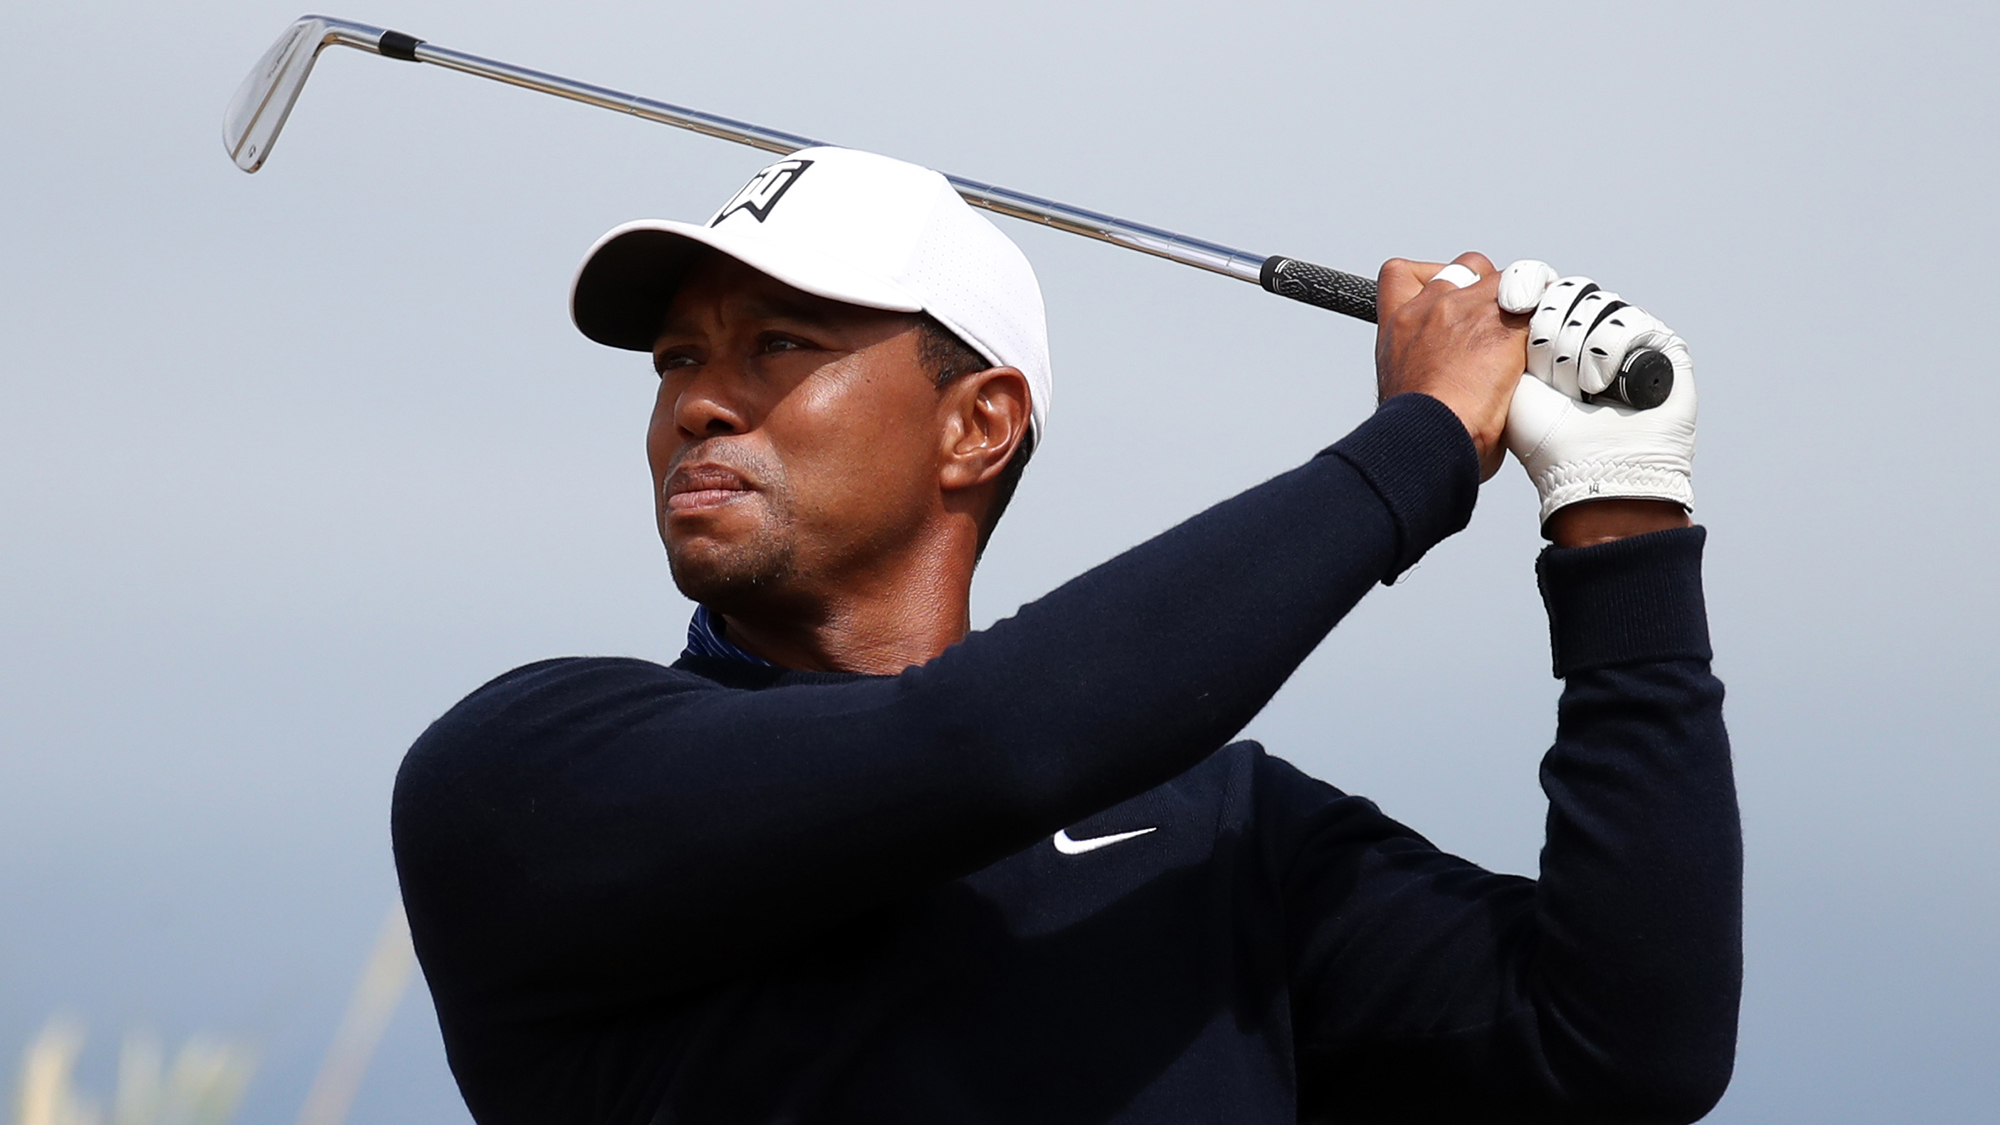 Tiger Woods driver driving iron carnoustie british open